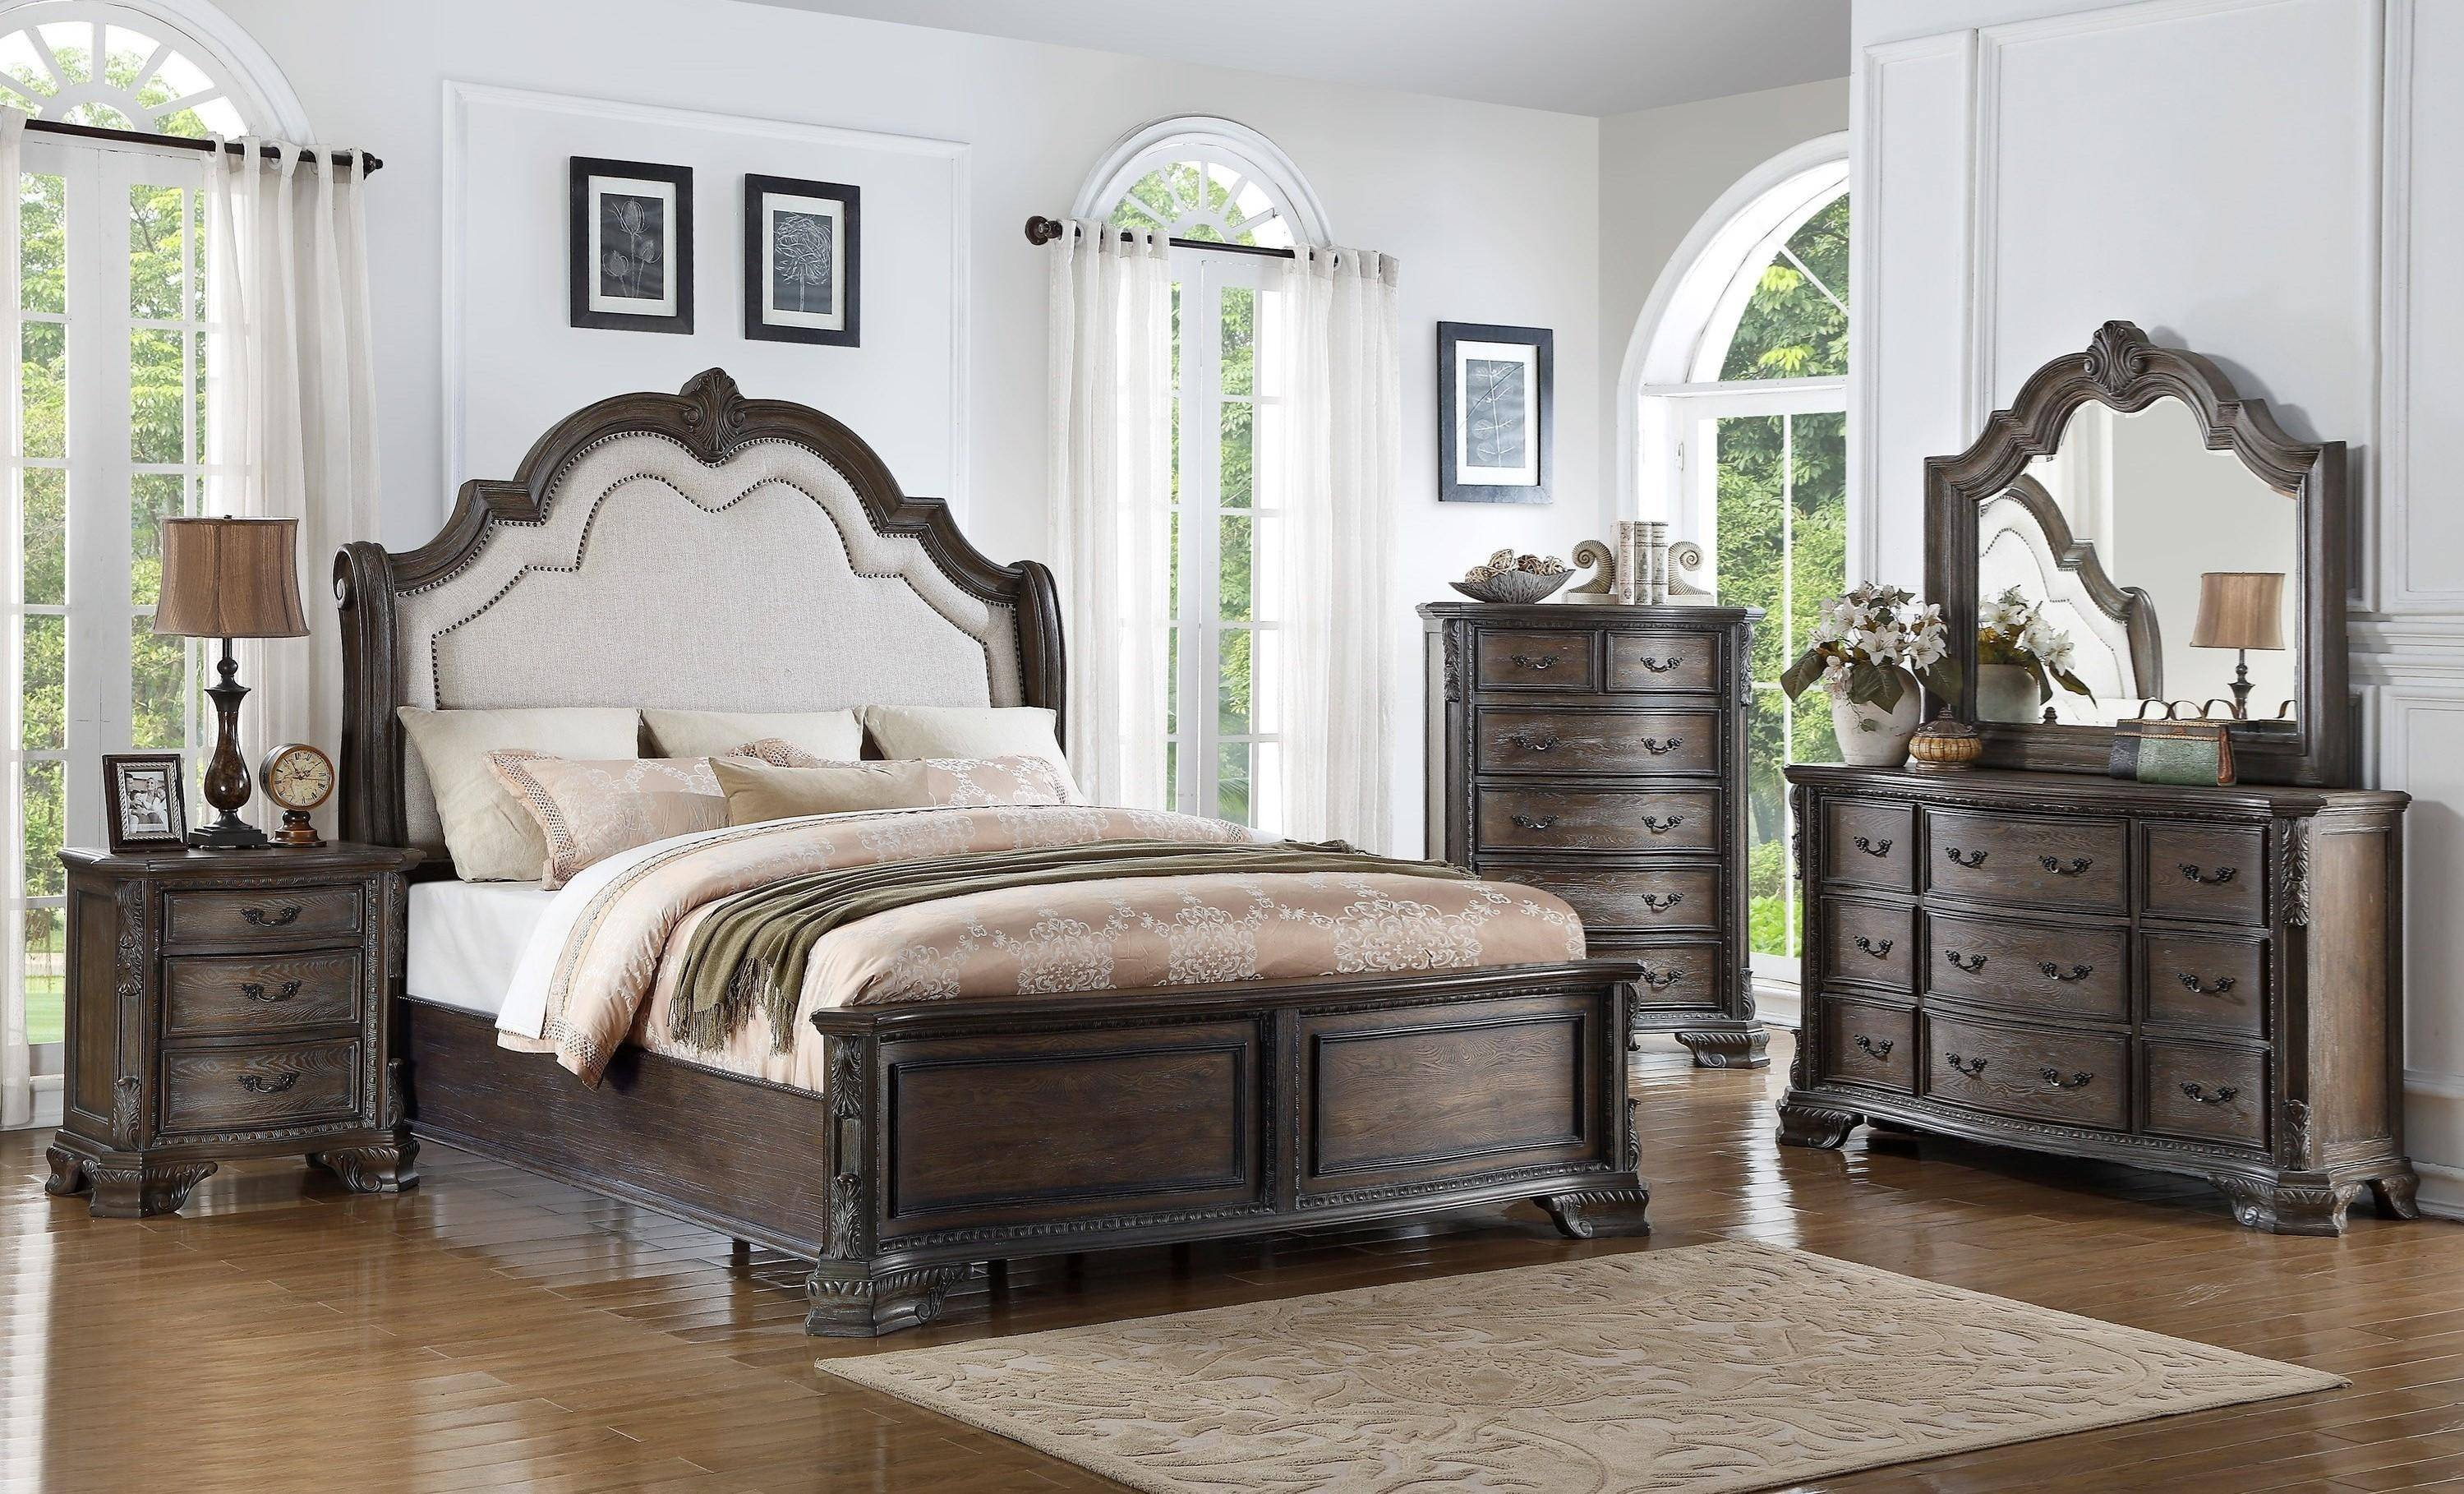 Tufted King Bedroom Set Luxury Crown Mark B1120 Sheffield Queen Panel Bed In Gray Fabric